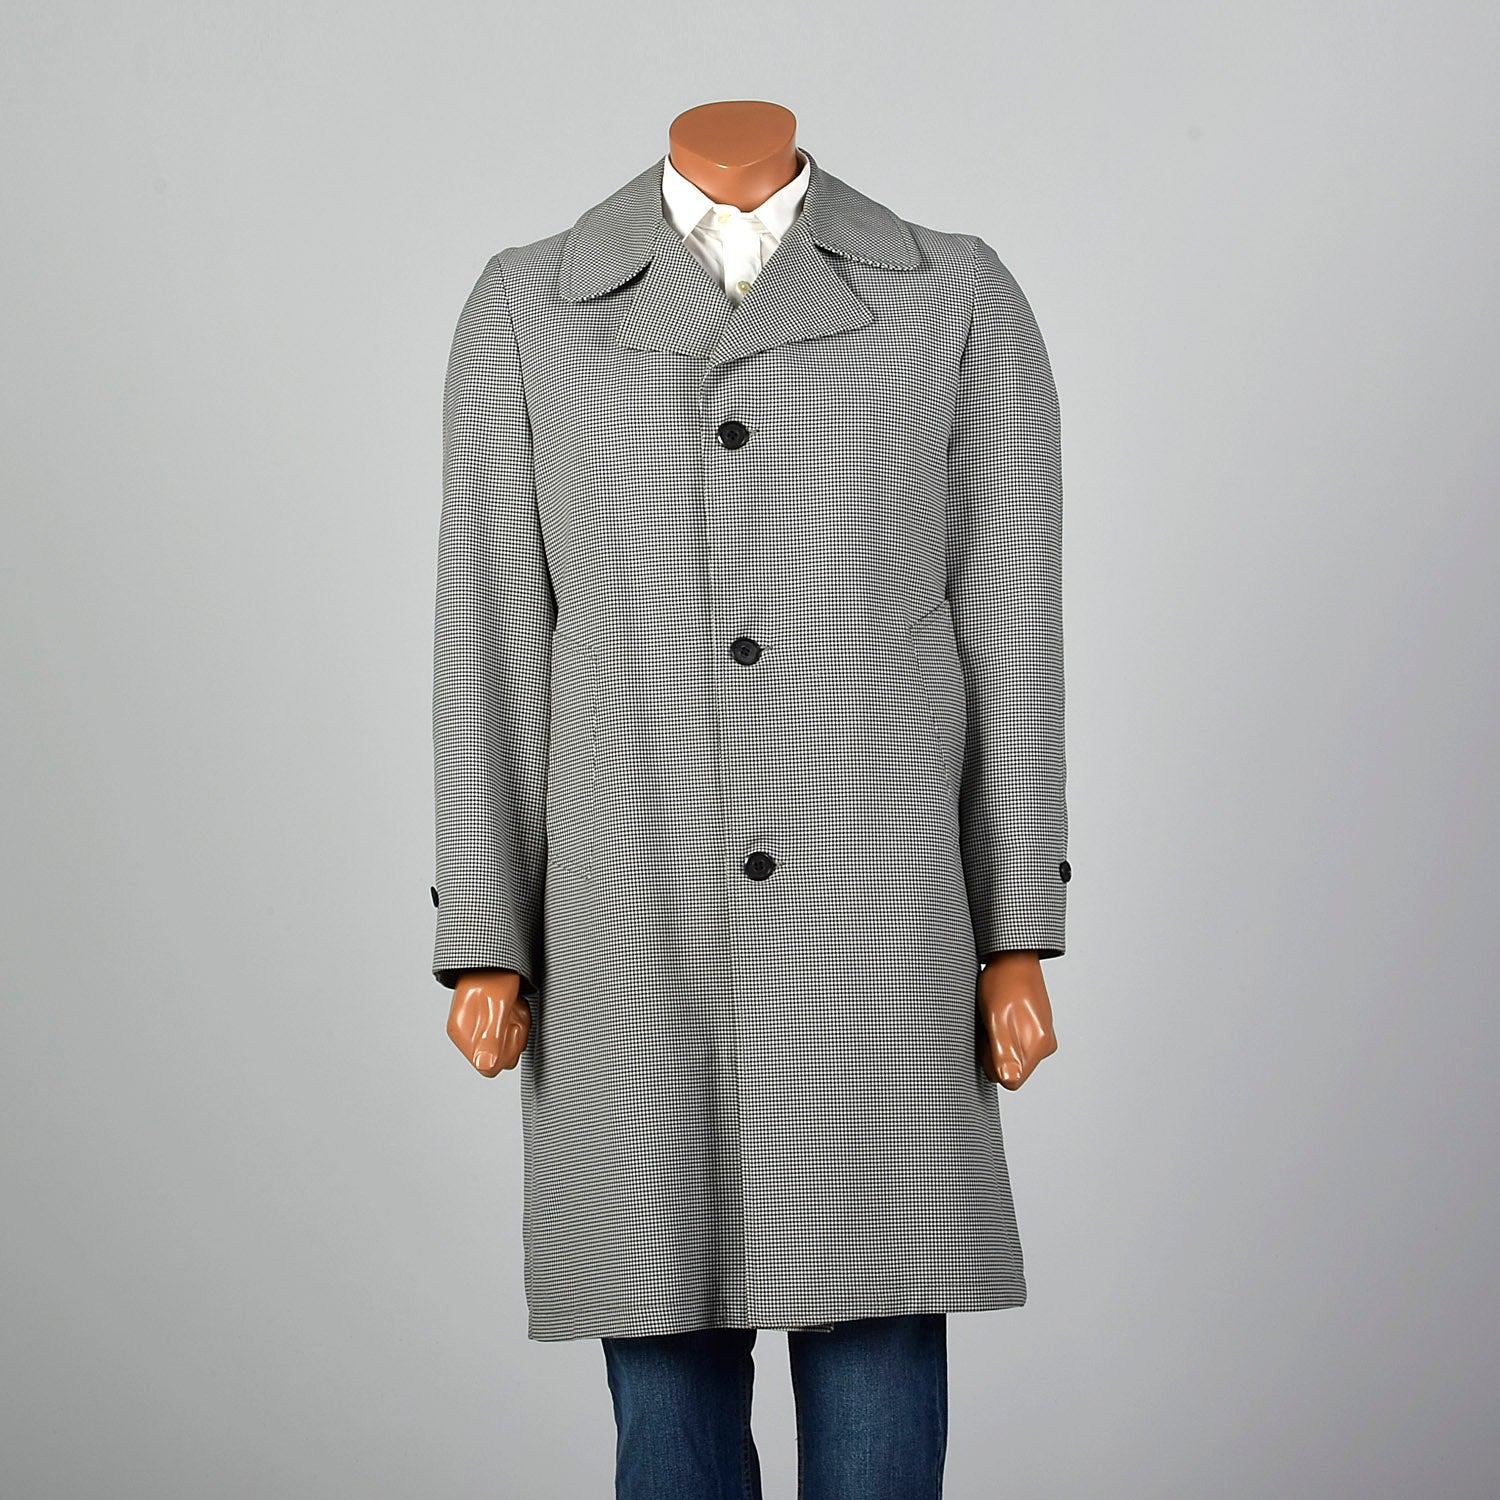 1970s Gray Year Round Overcoat